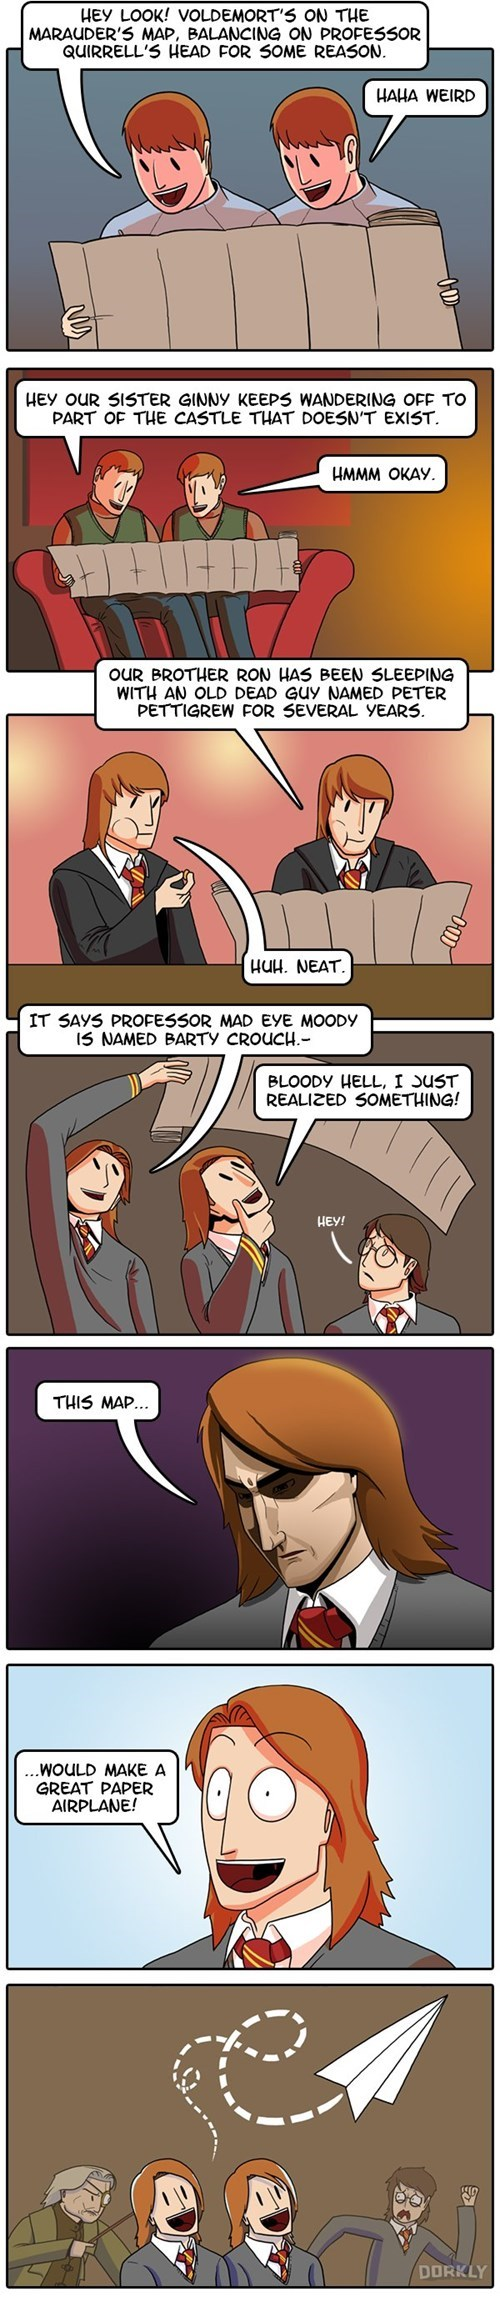 harry potter memes weasley twins marauders map web comic